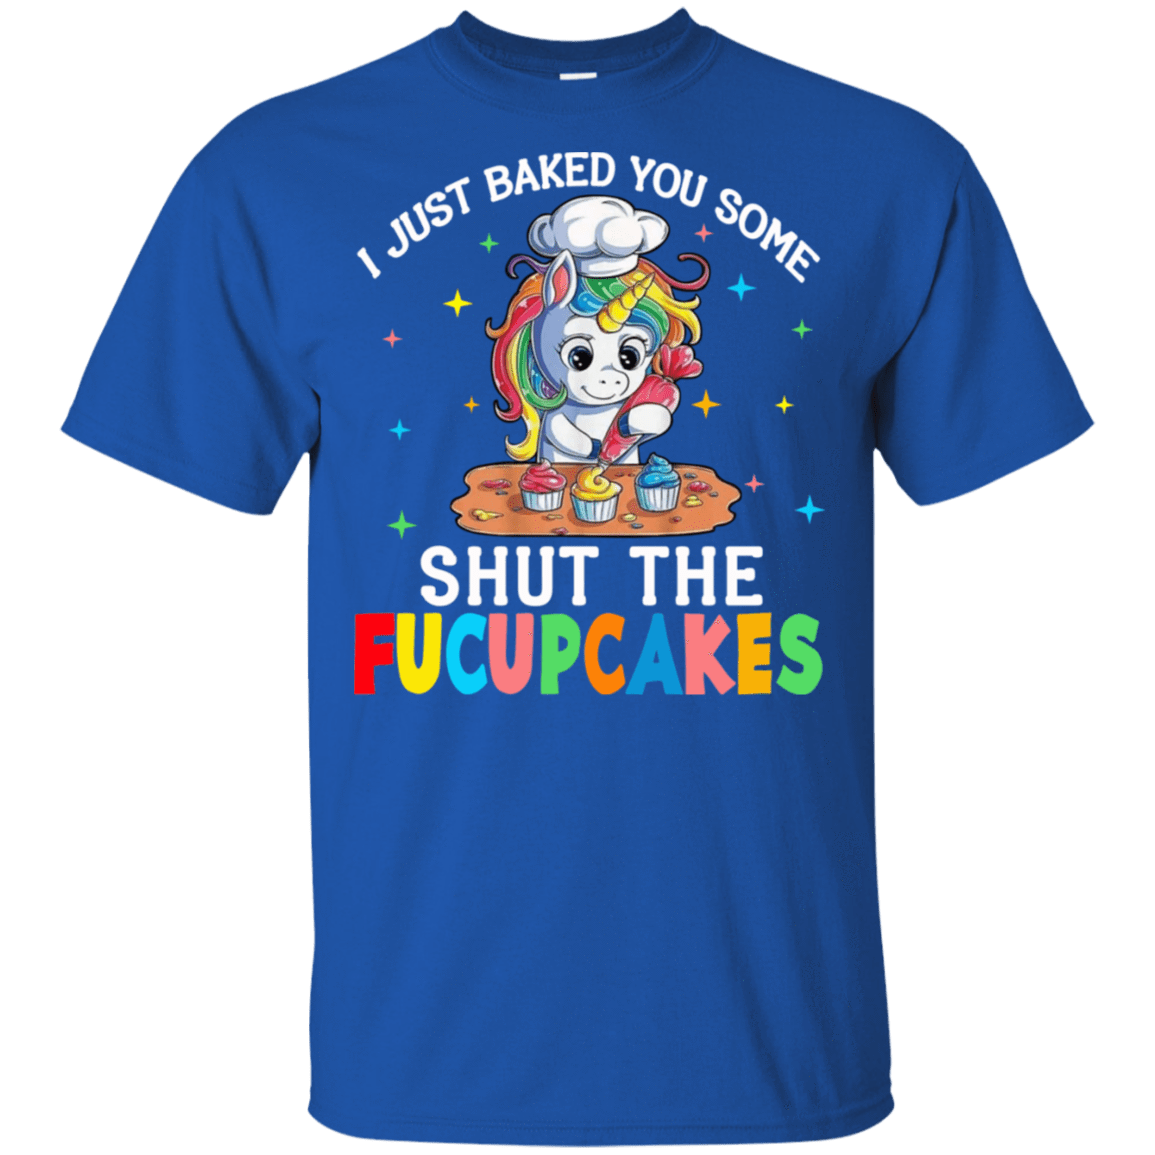 I Just Baked You Some Shut The Fucupcakes Unicorn 22-110-73564722-249 - Tee Ript